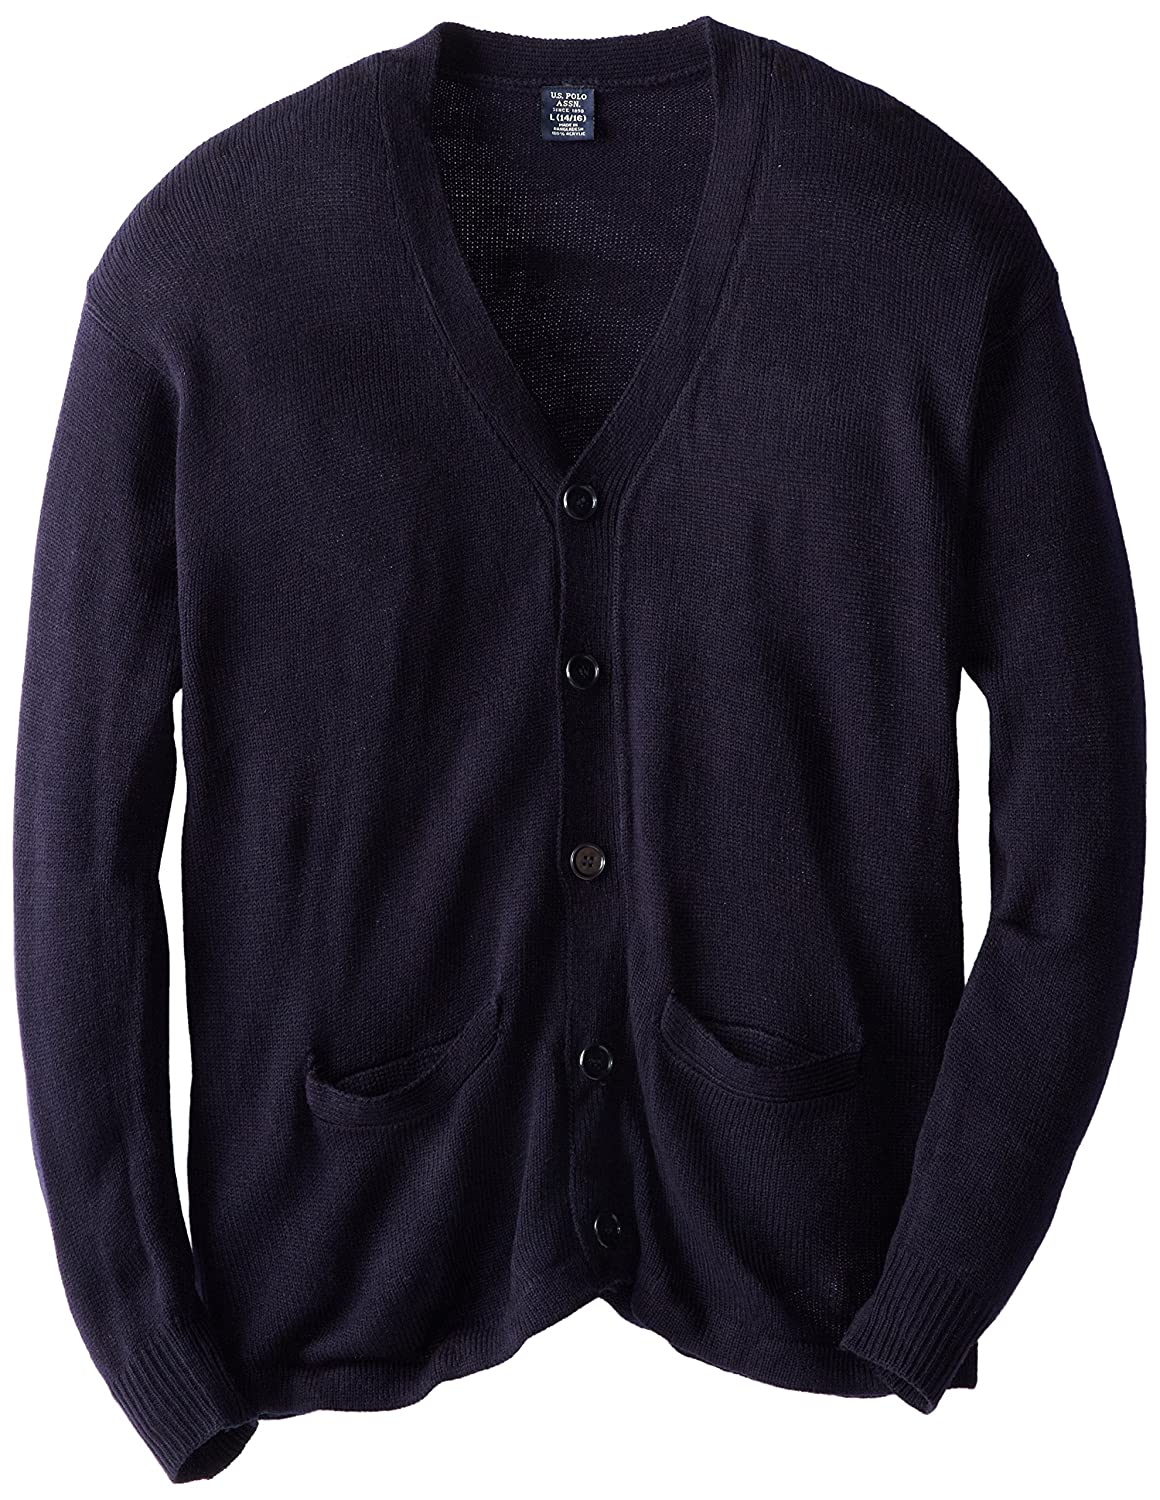 U.S. Polo Assn. Welt Pocket Cardigan Sweater